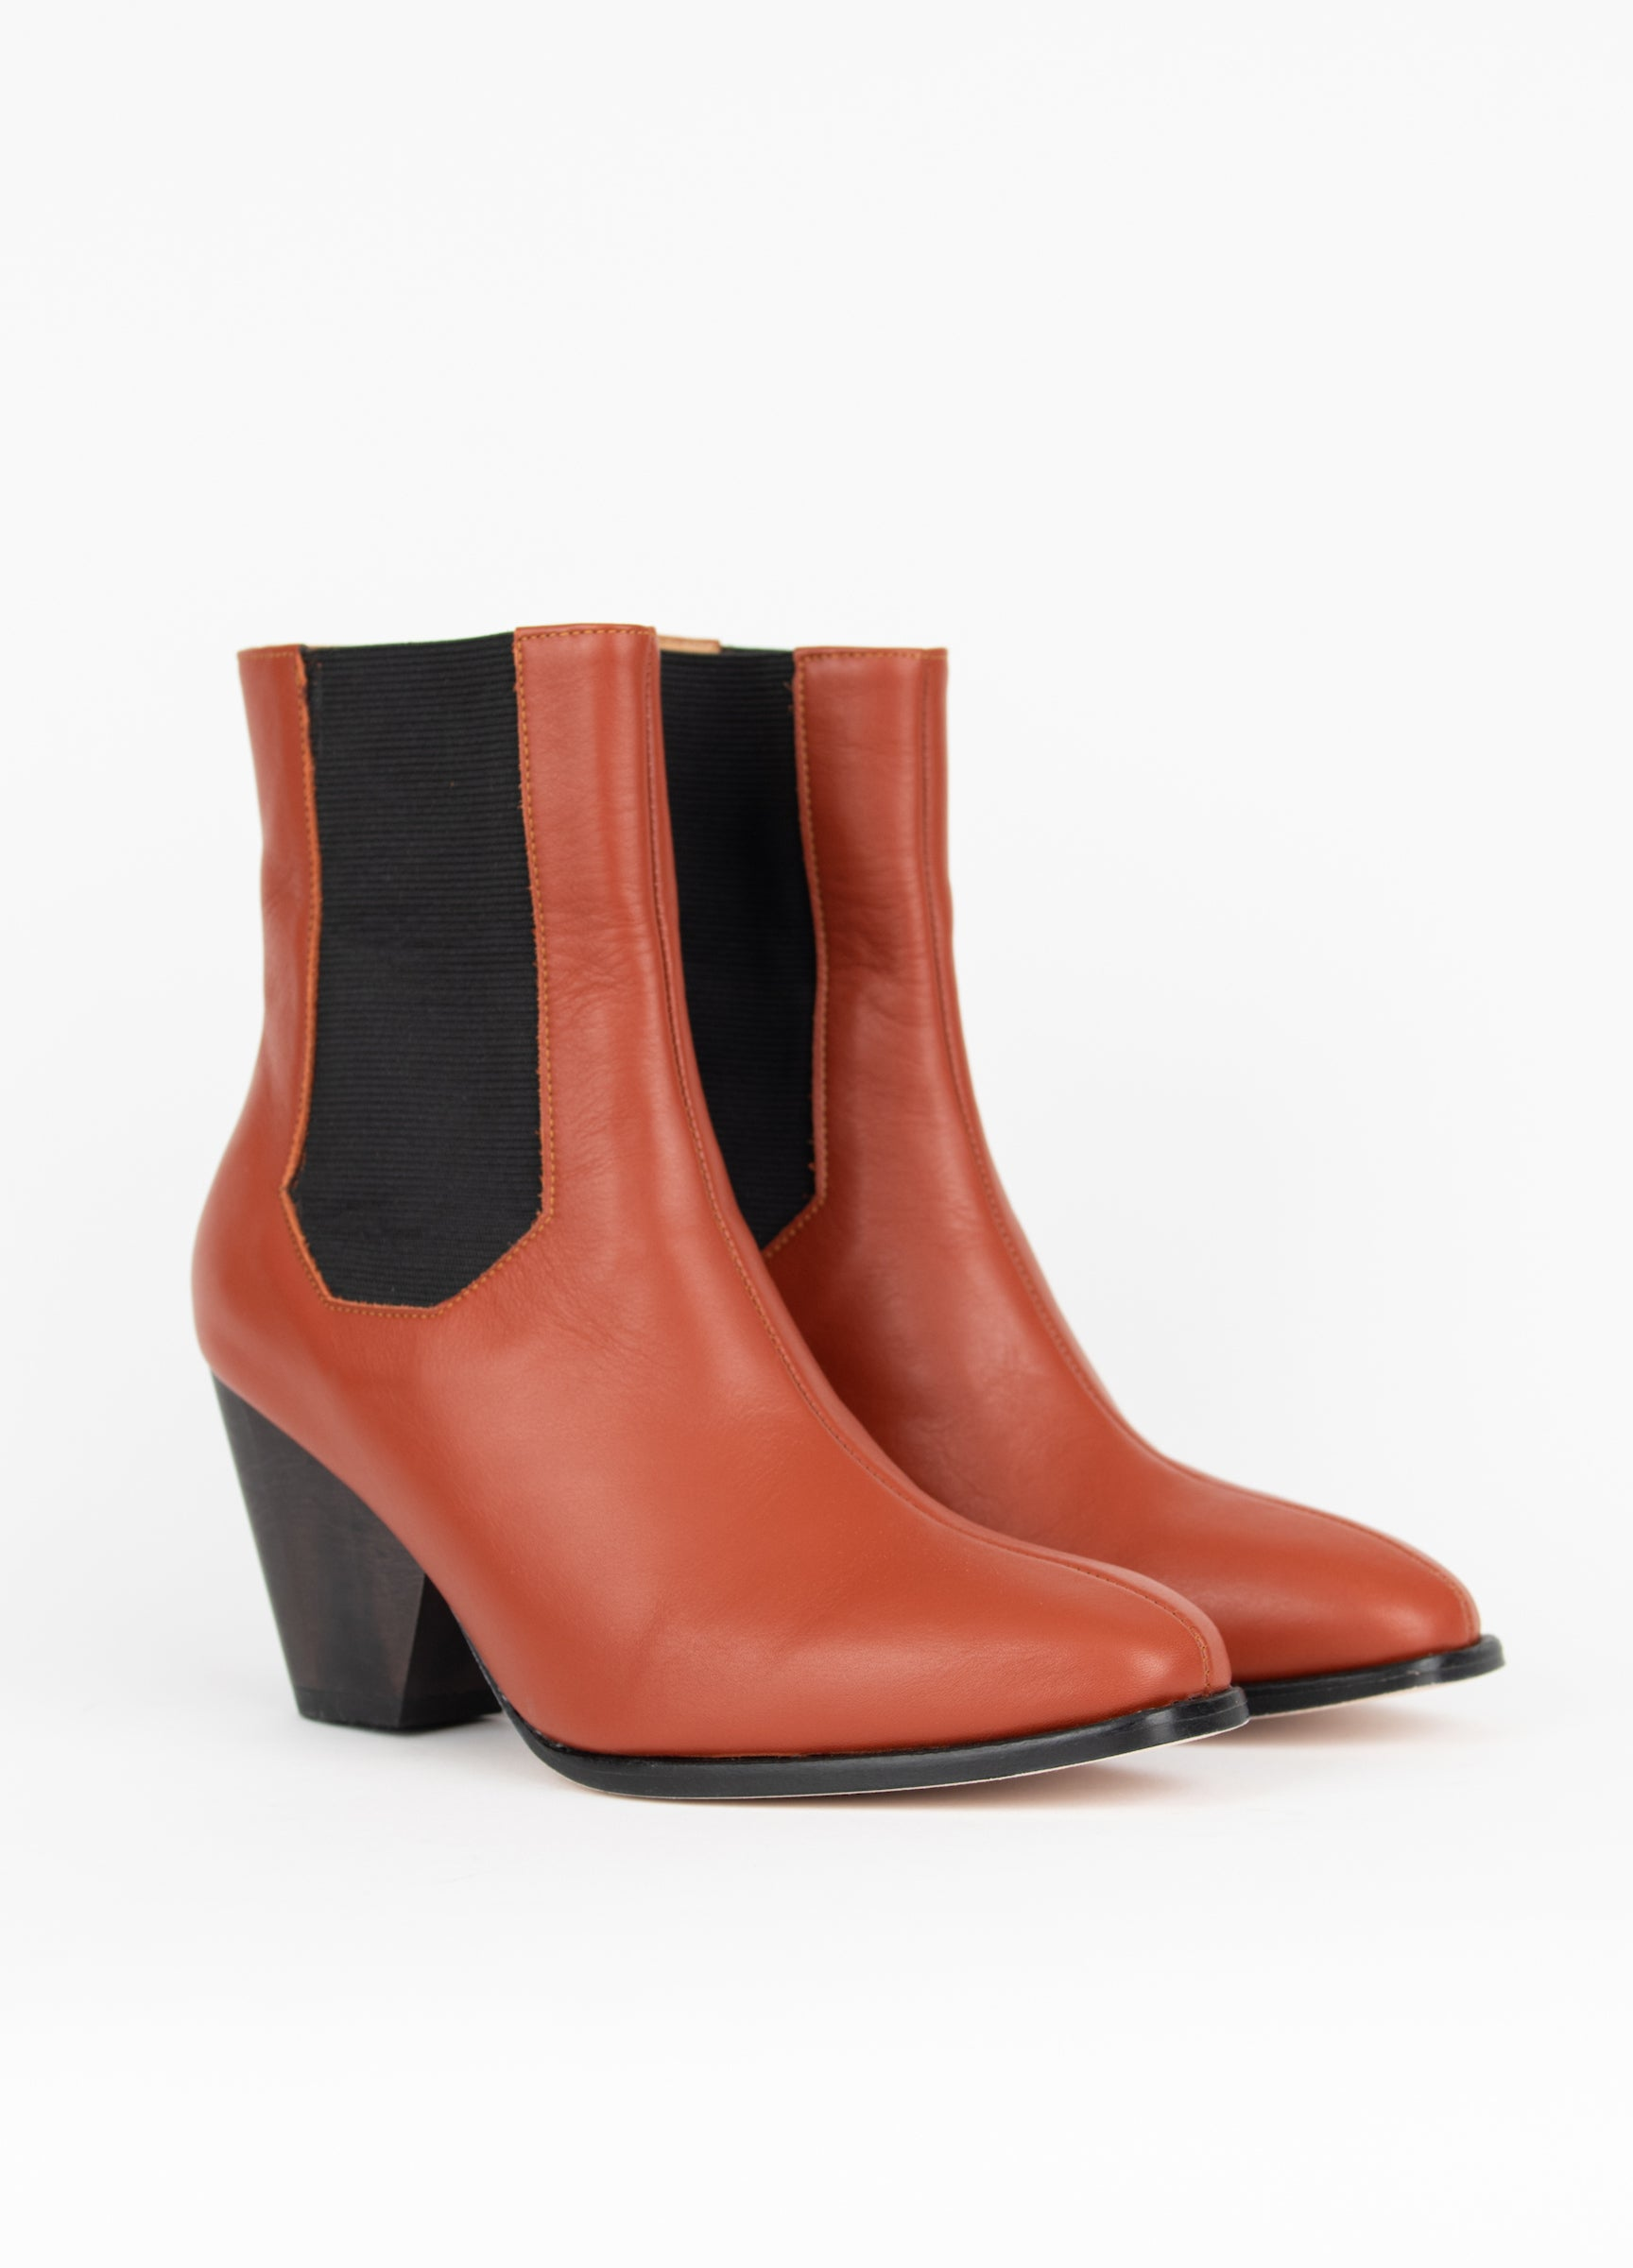 "Clementines The Palatines Ingeria Duo Boot Rosewood Leather 3"" Heel Women's Shoes Seattle Pair"